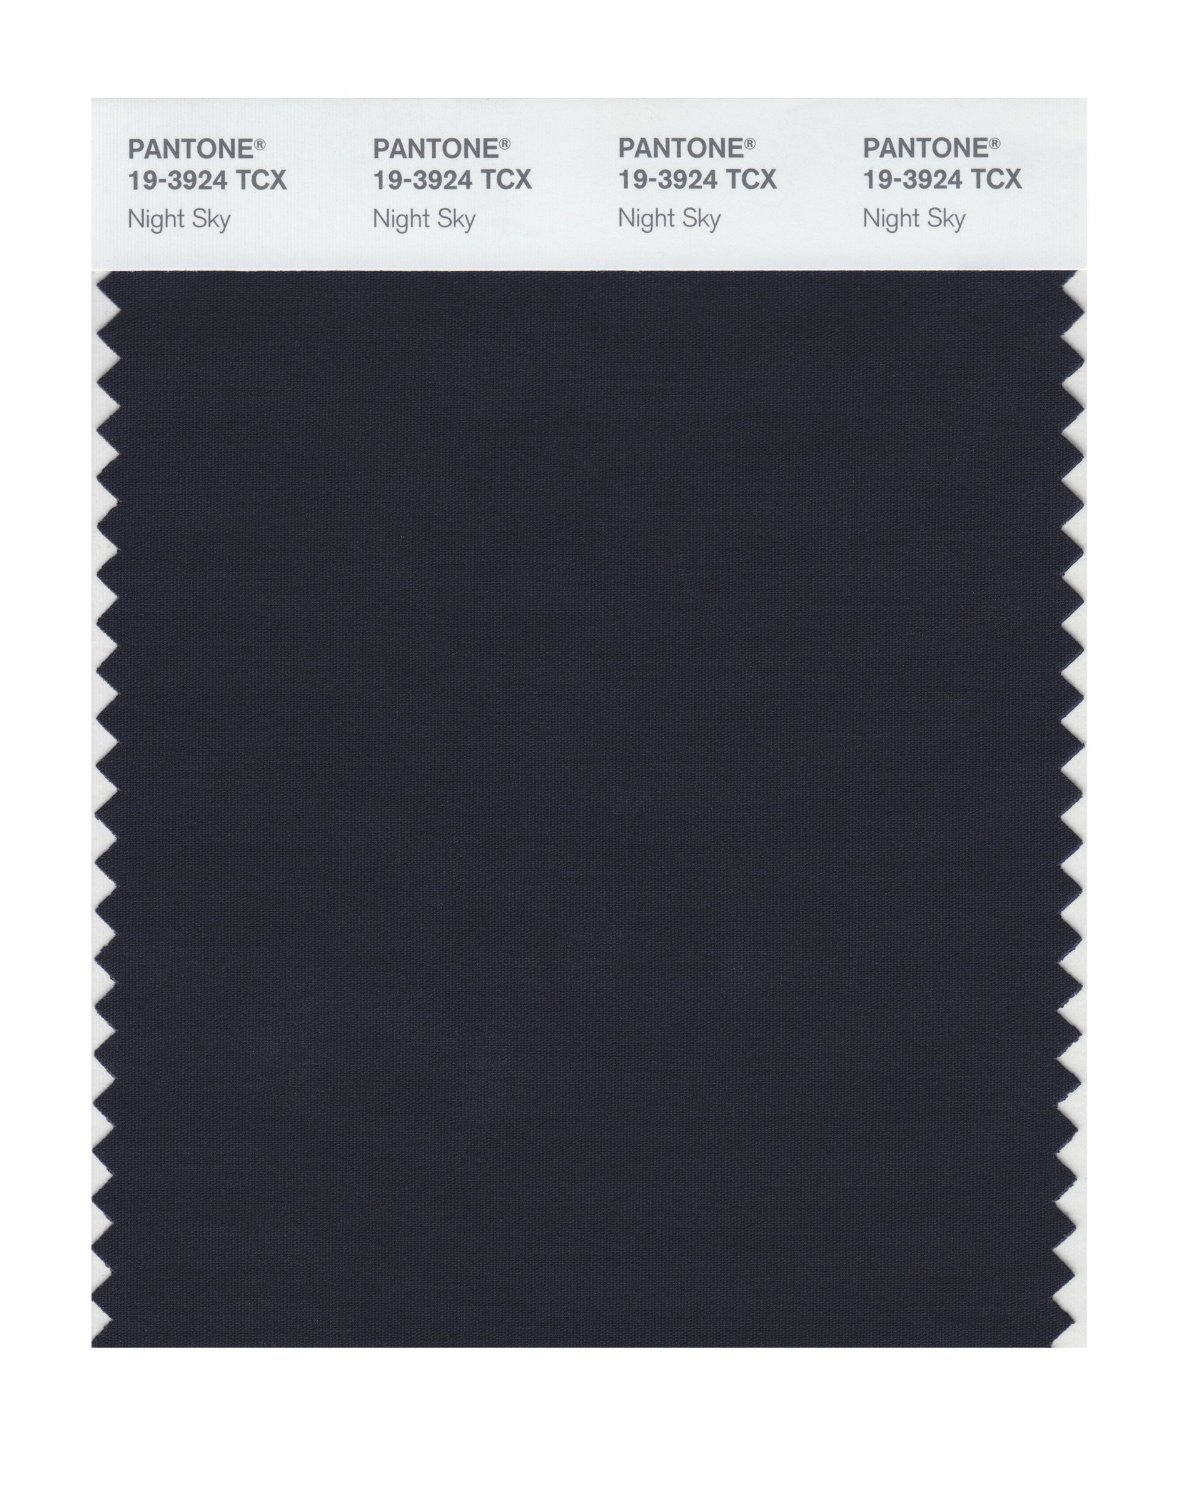 Pantone Smart Swatch 19-3924 Night Sky